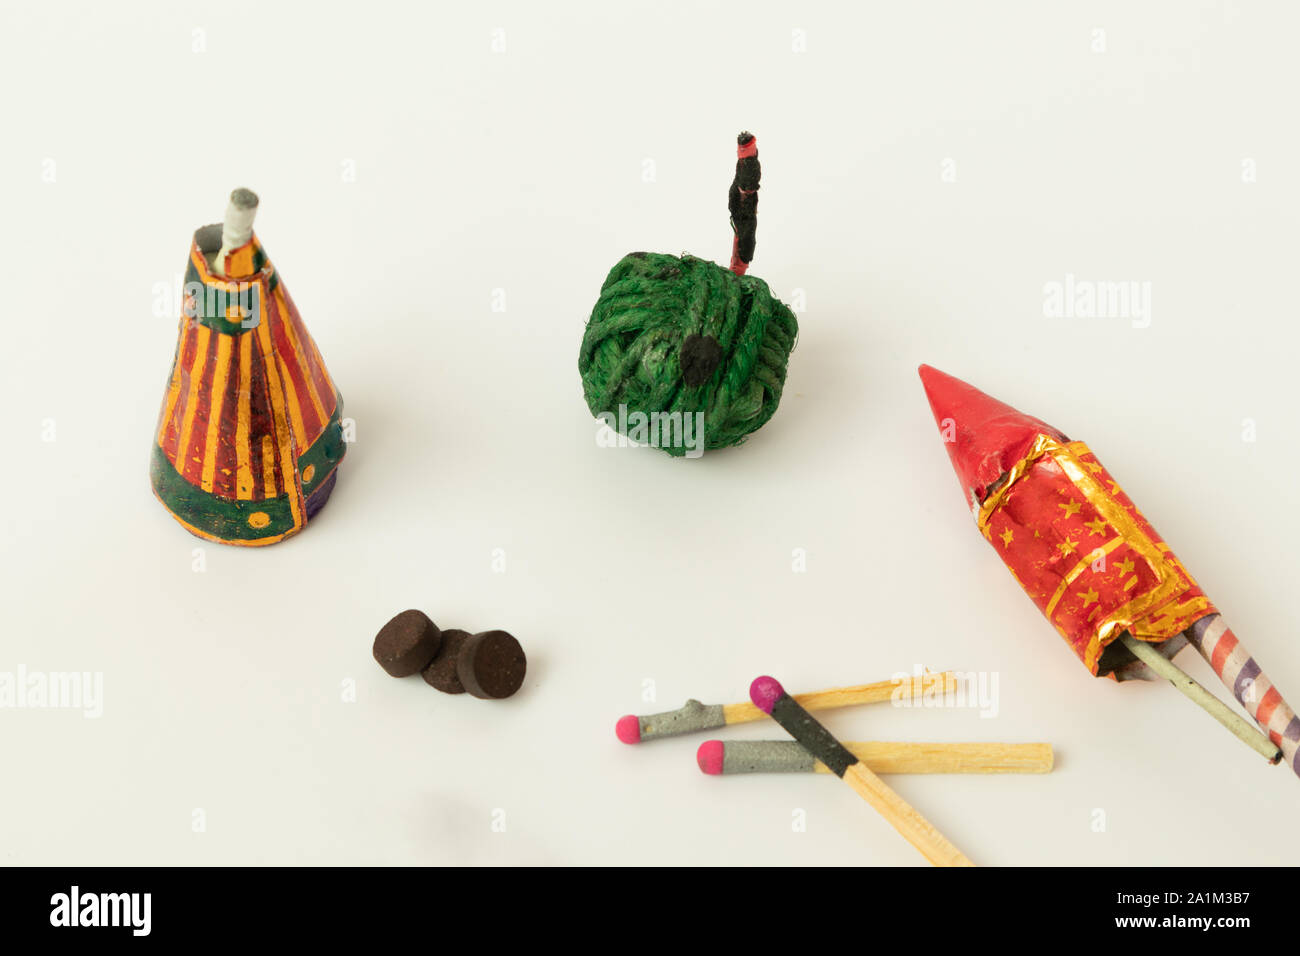 Close up of different types of Diwali Firecrackers on isolated background with copy space. Stock Photo